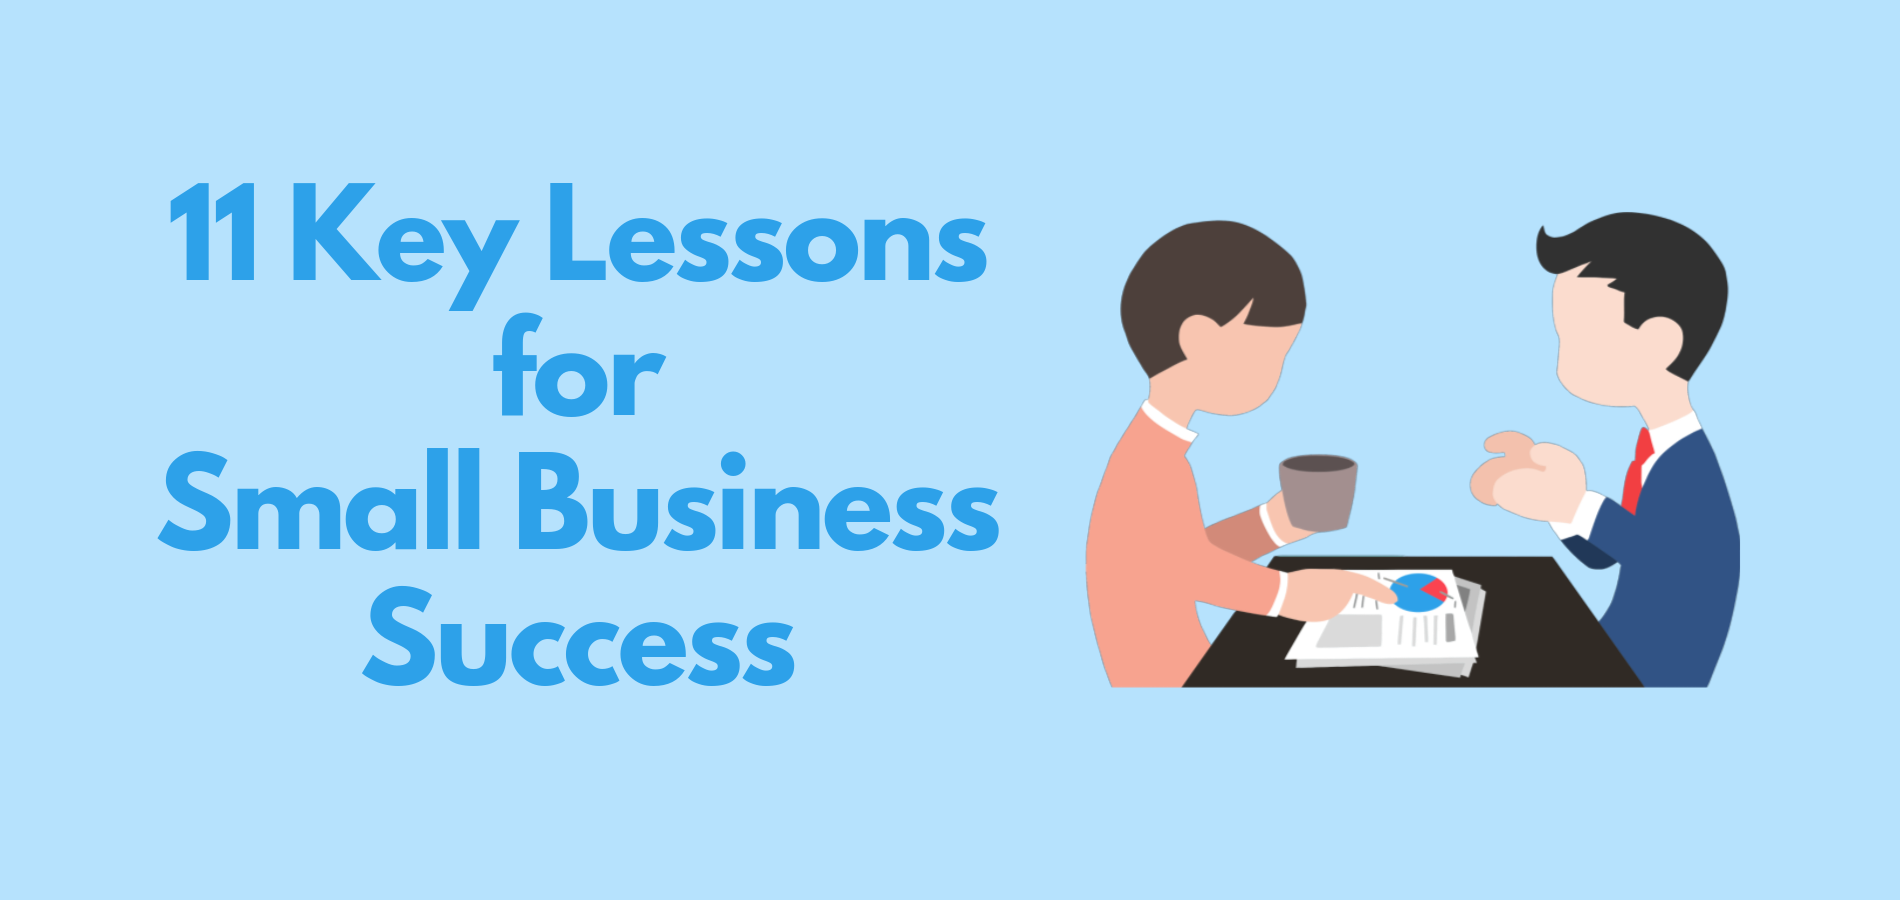 11 Key Lessons for Small Business Success